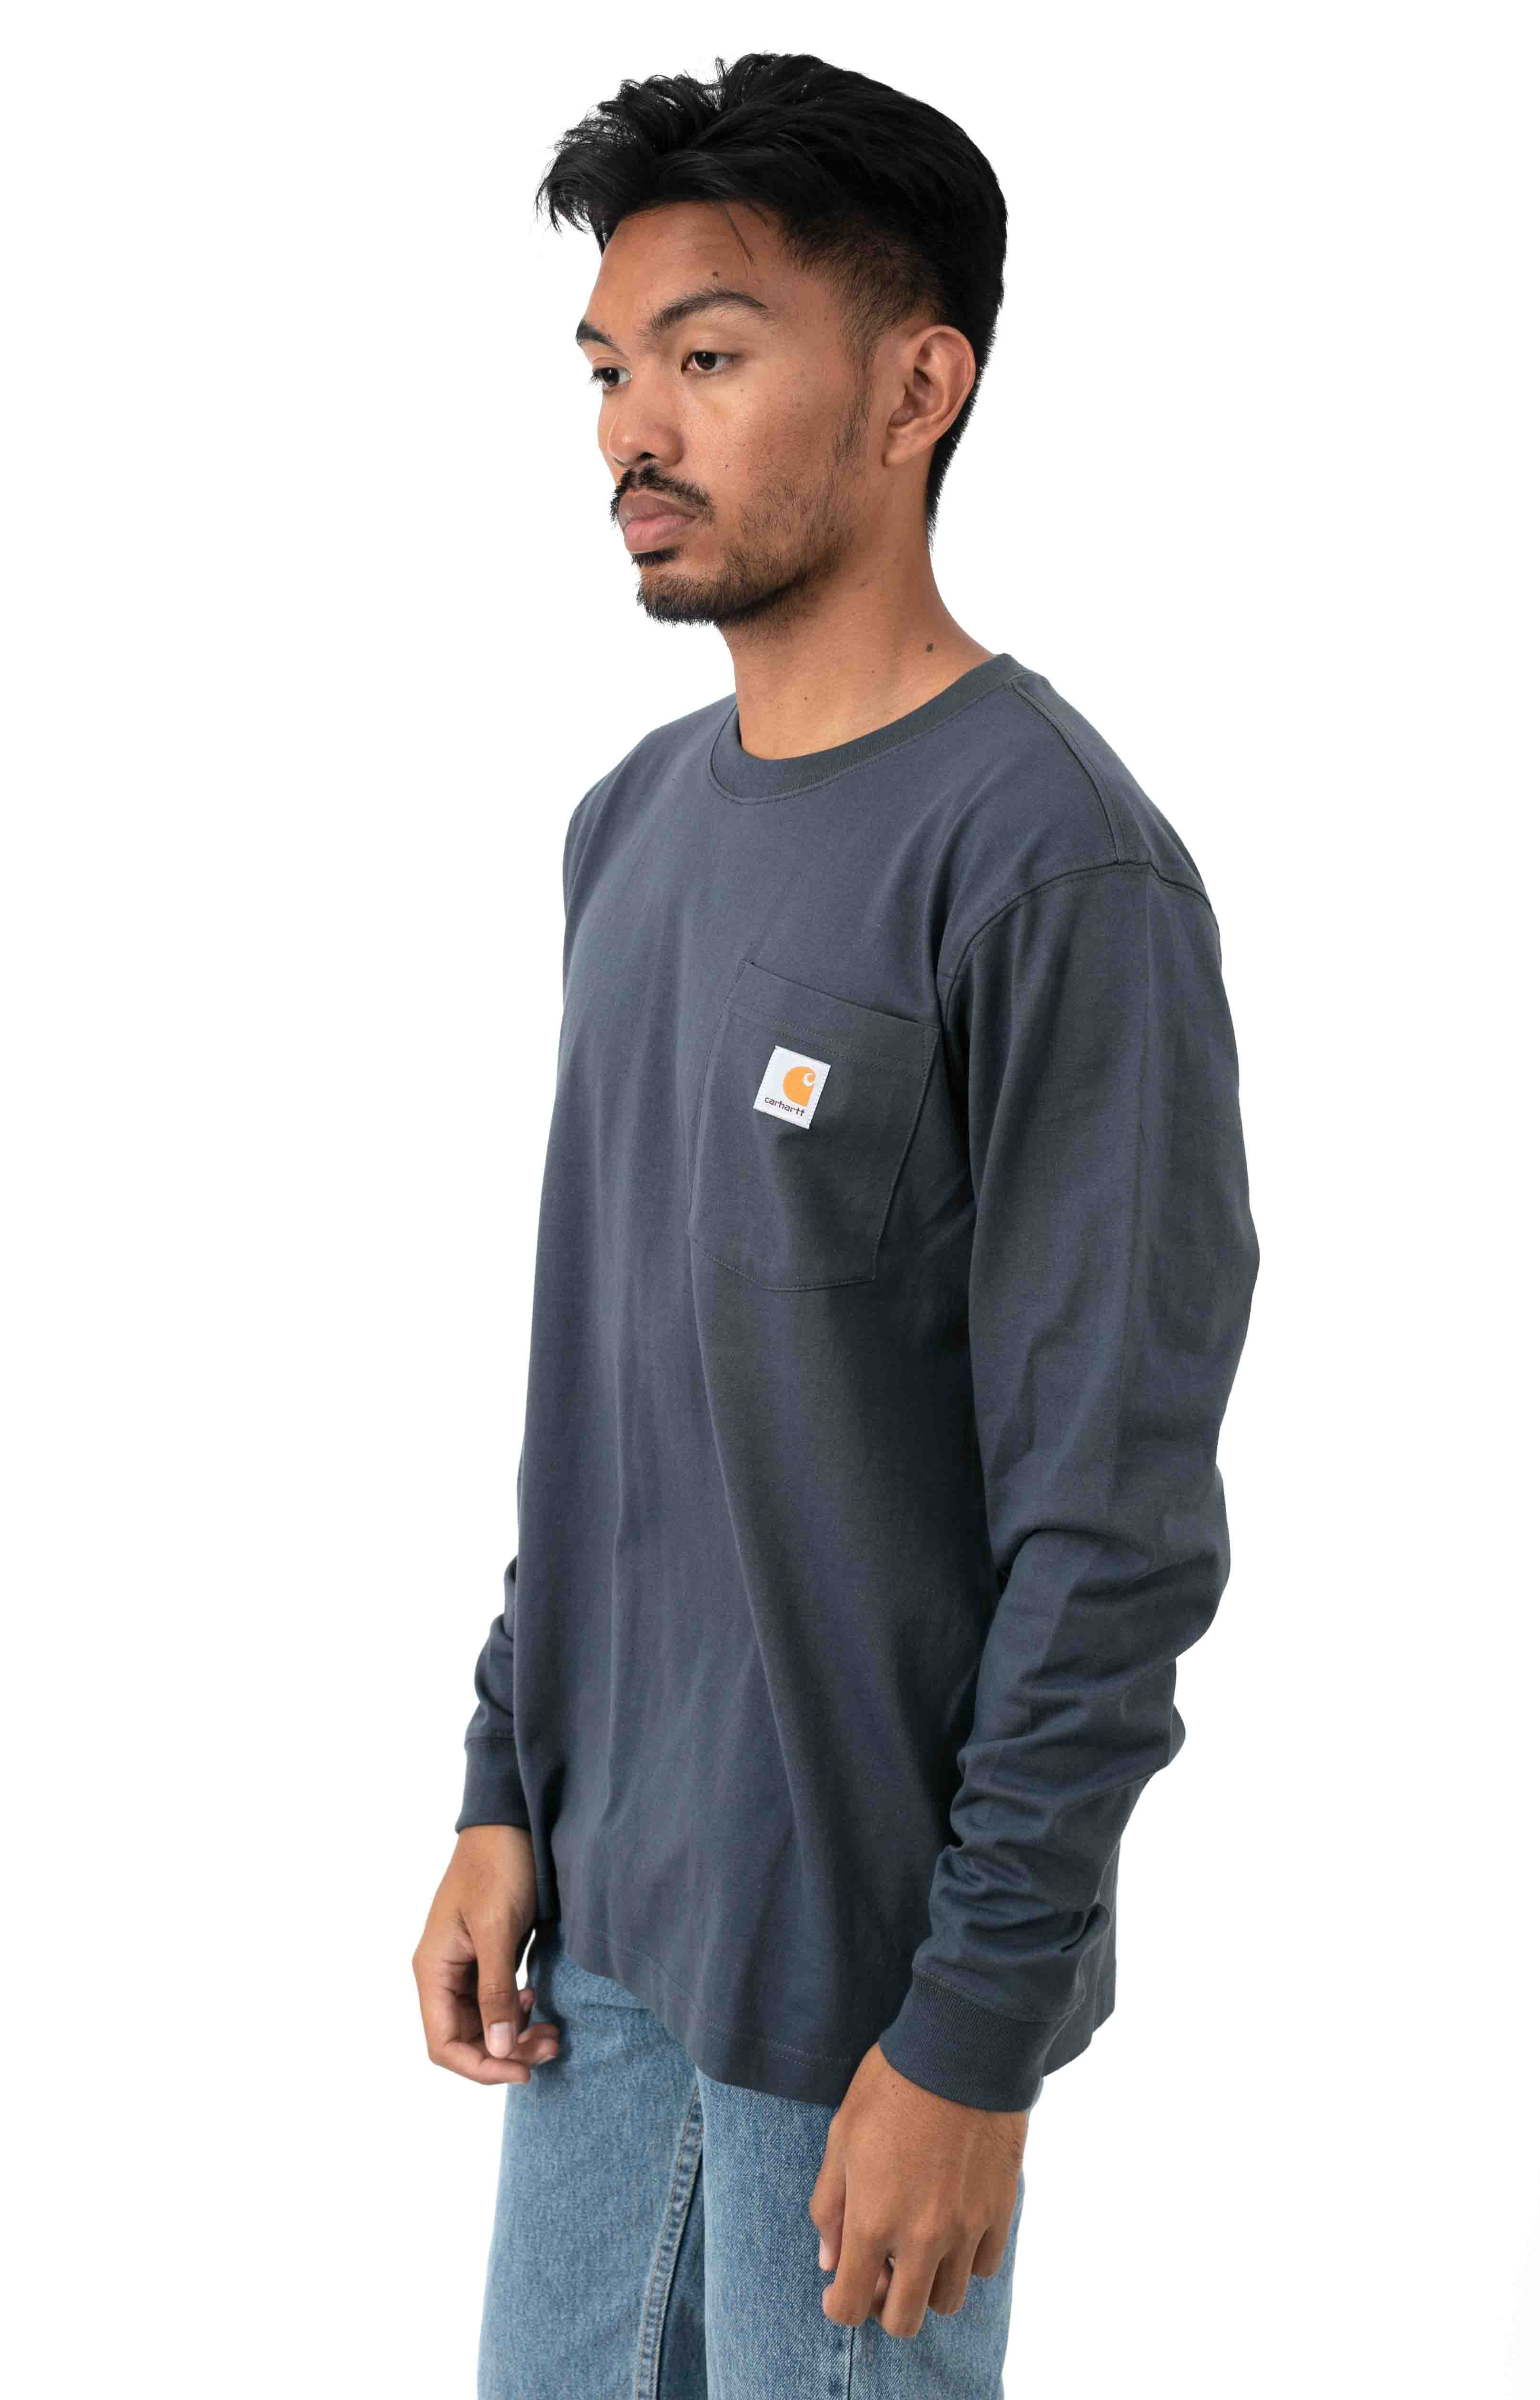 (104434) Relaxed Fit HW L/S Pocket Logo Graphic Shirt - Bluestone  2